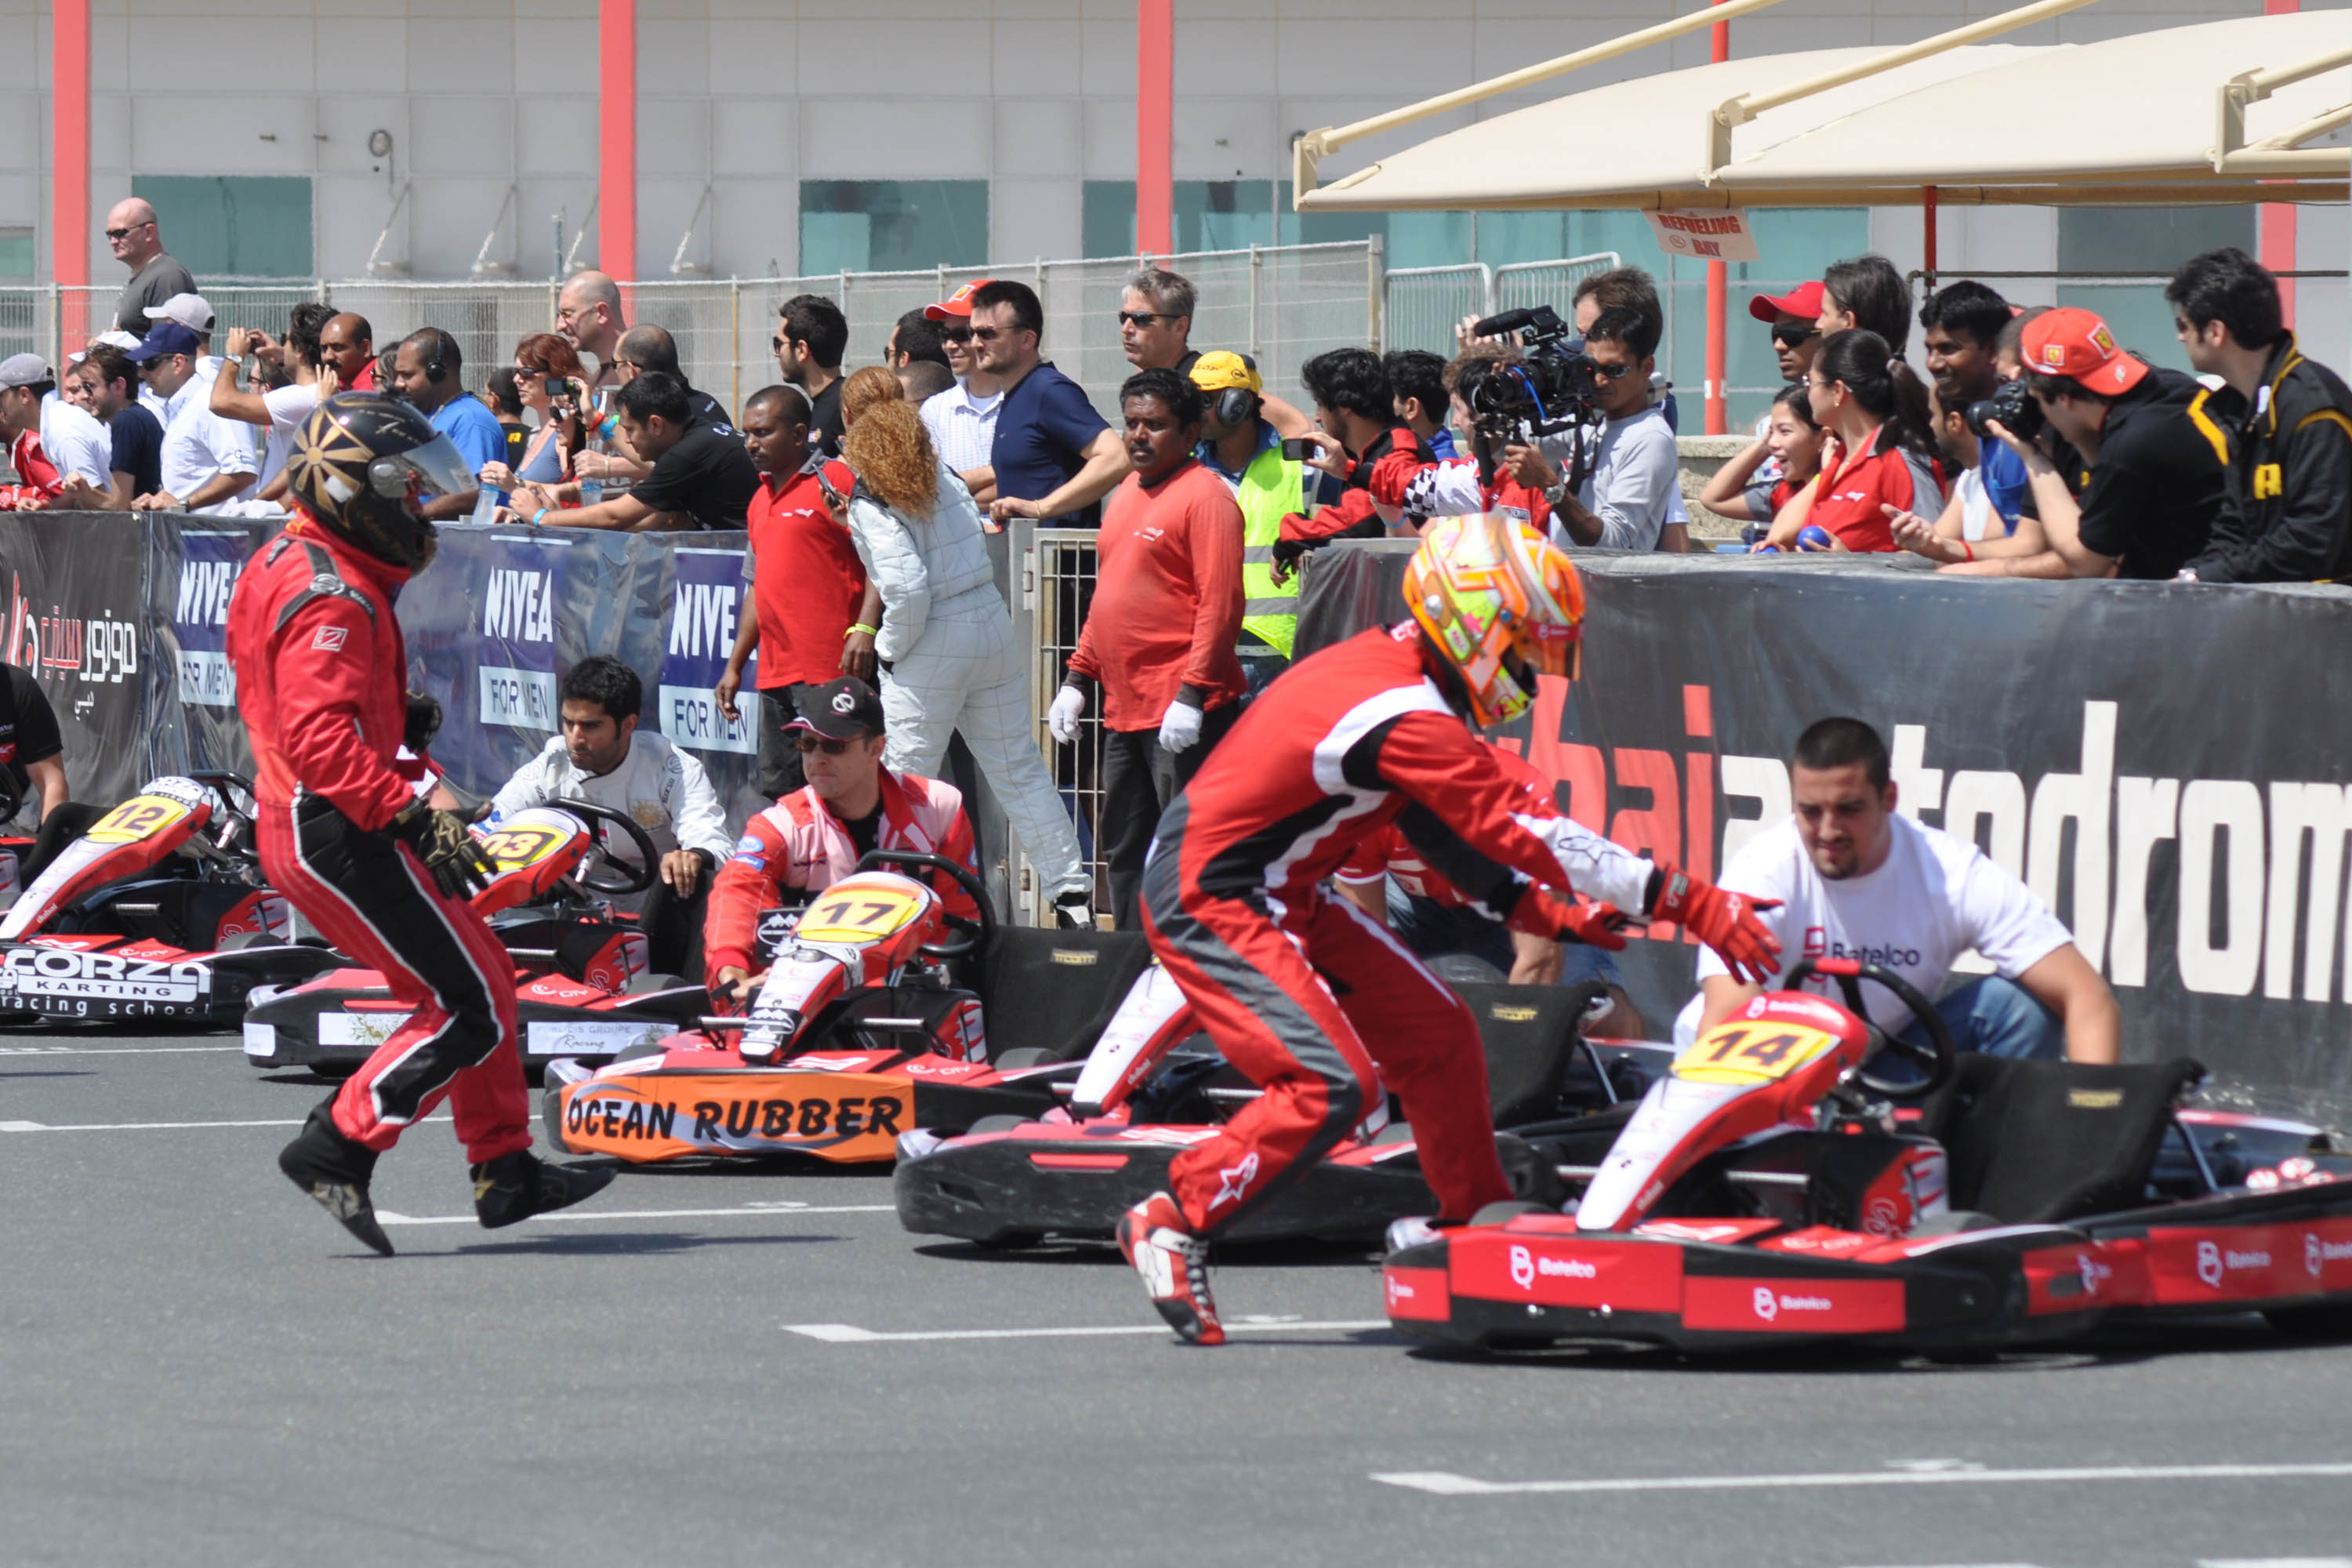 24hrs Karting: Batelco take early lead of motorcity 24 Hours at the Dubai Kartdrome